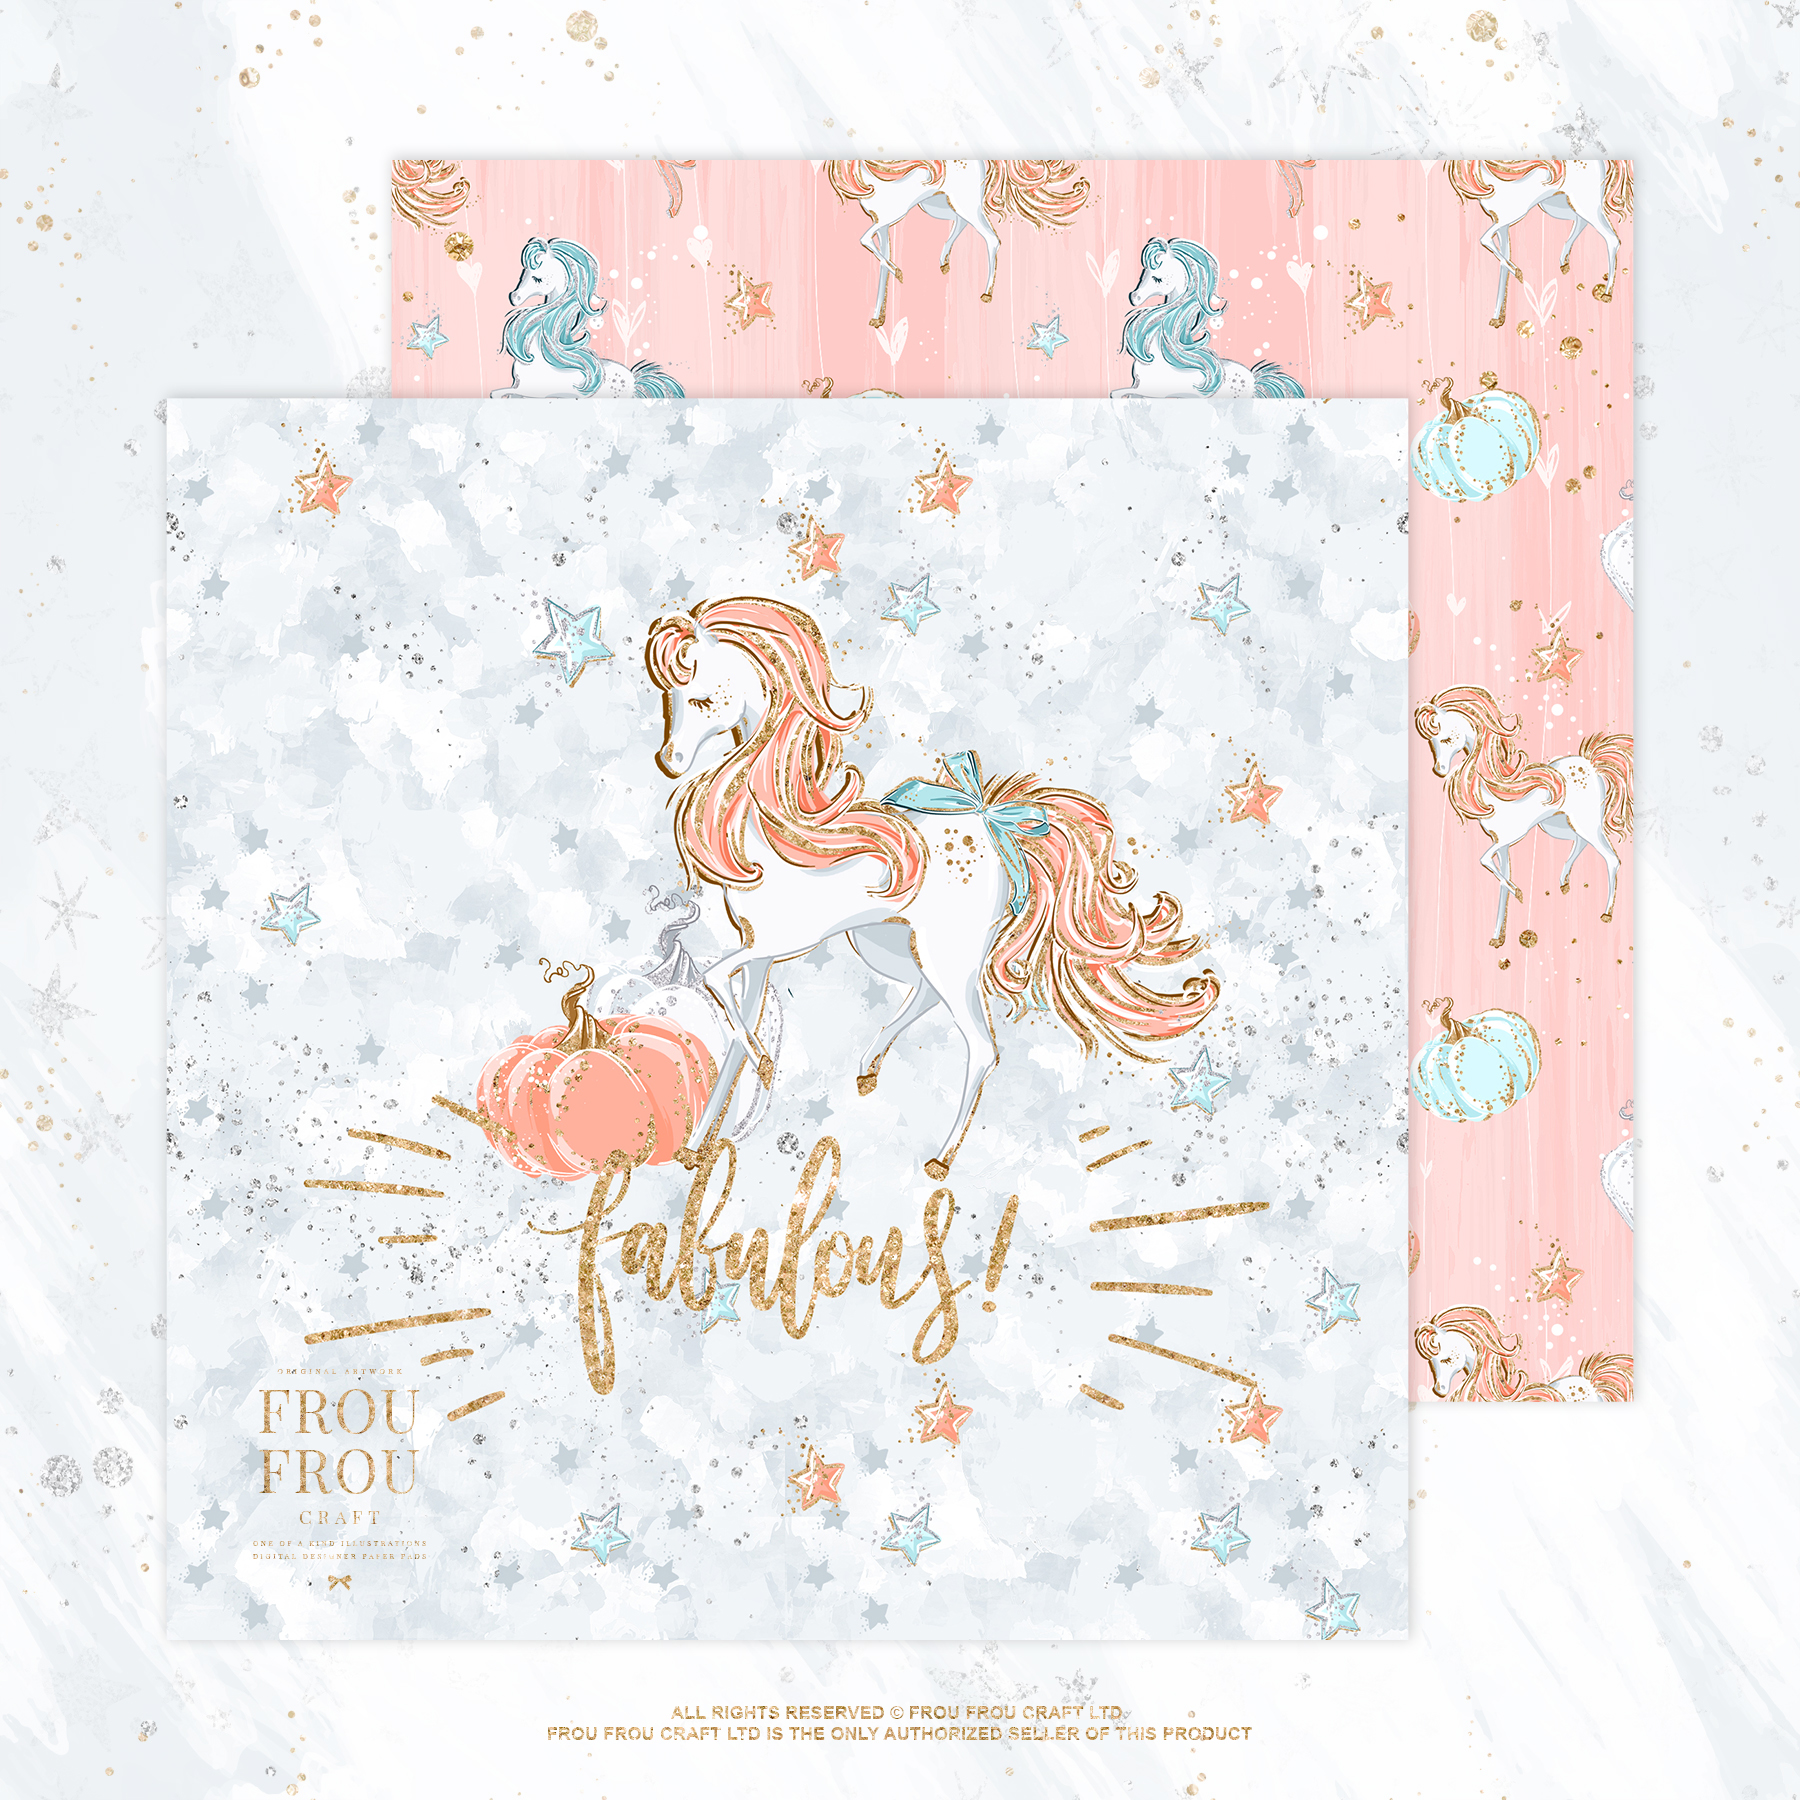 Princess Fairy Tale Gold Glitter Paper Pack example image 6